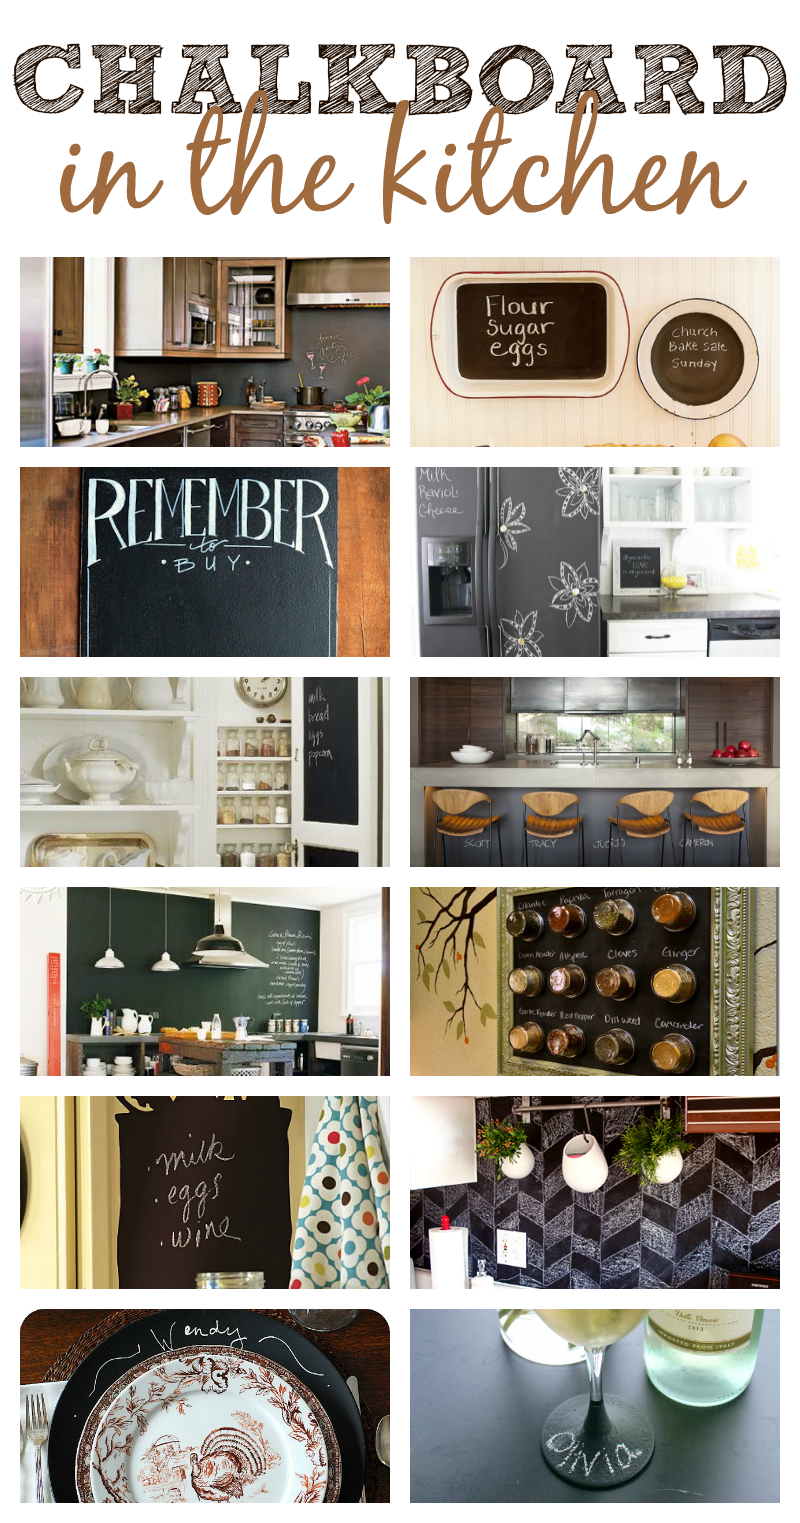 Chalkboard ideas in the kitchen this girl 39 s life blog - Kitchen chalkboard paint ideas ...